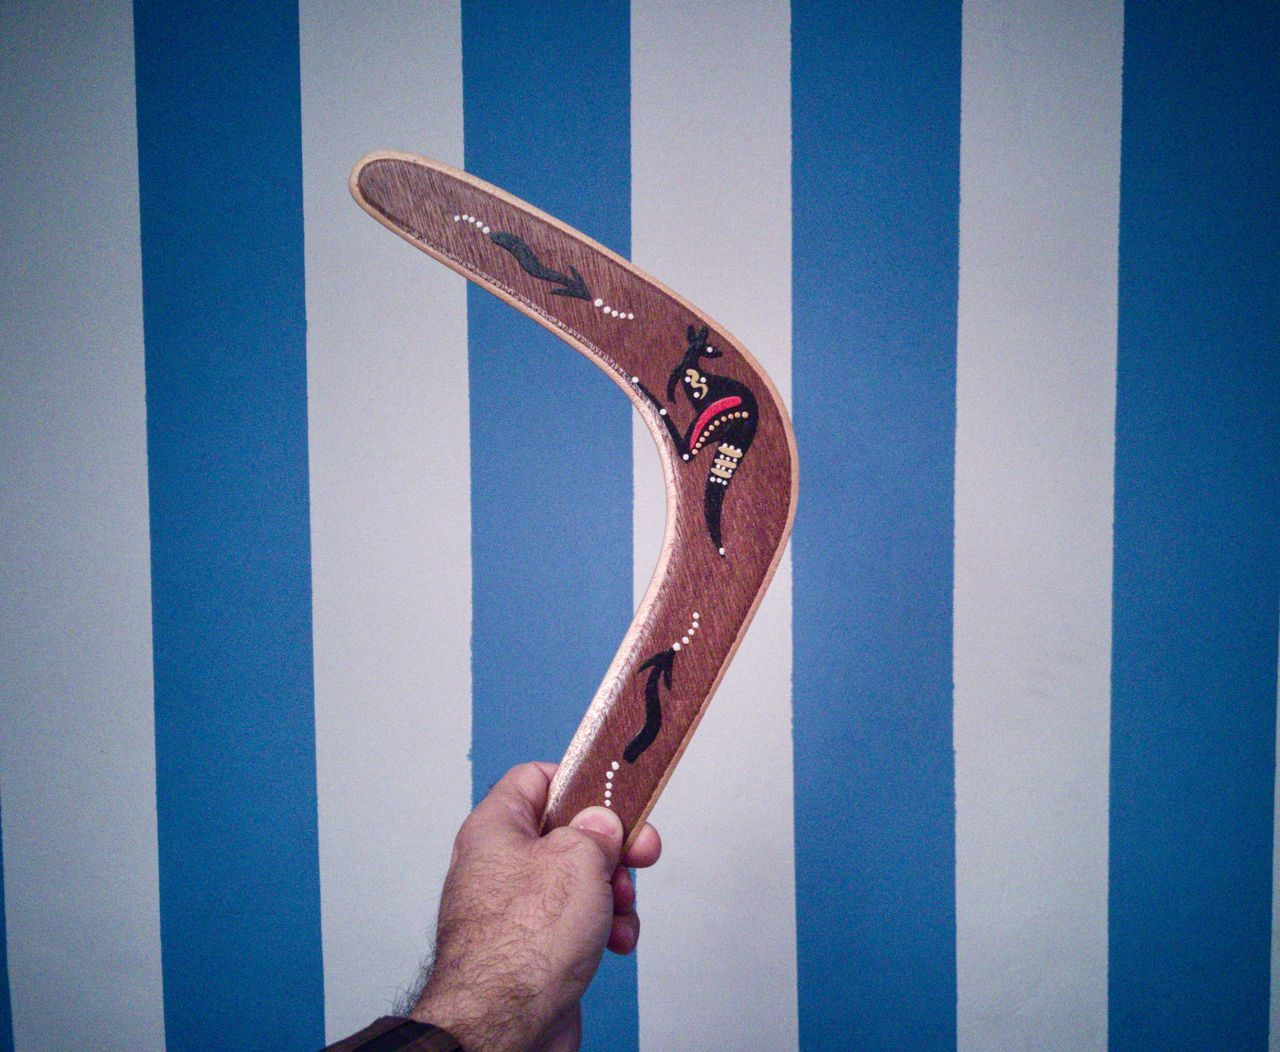 Boomerang human hand human body part archival close-up one person indoors EyeEm Team Vintage Style strips Lieblingsteil